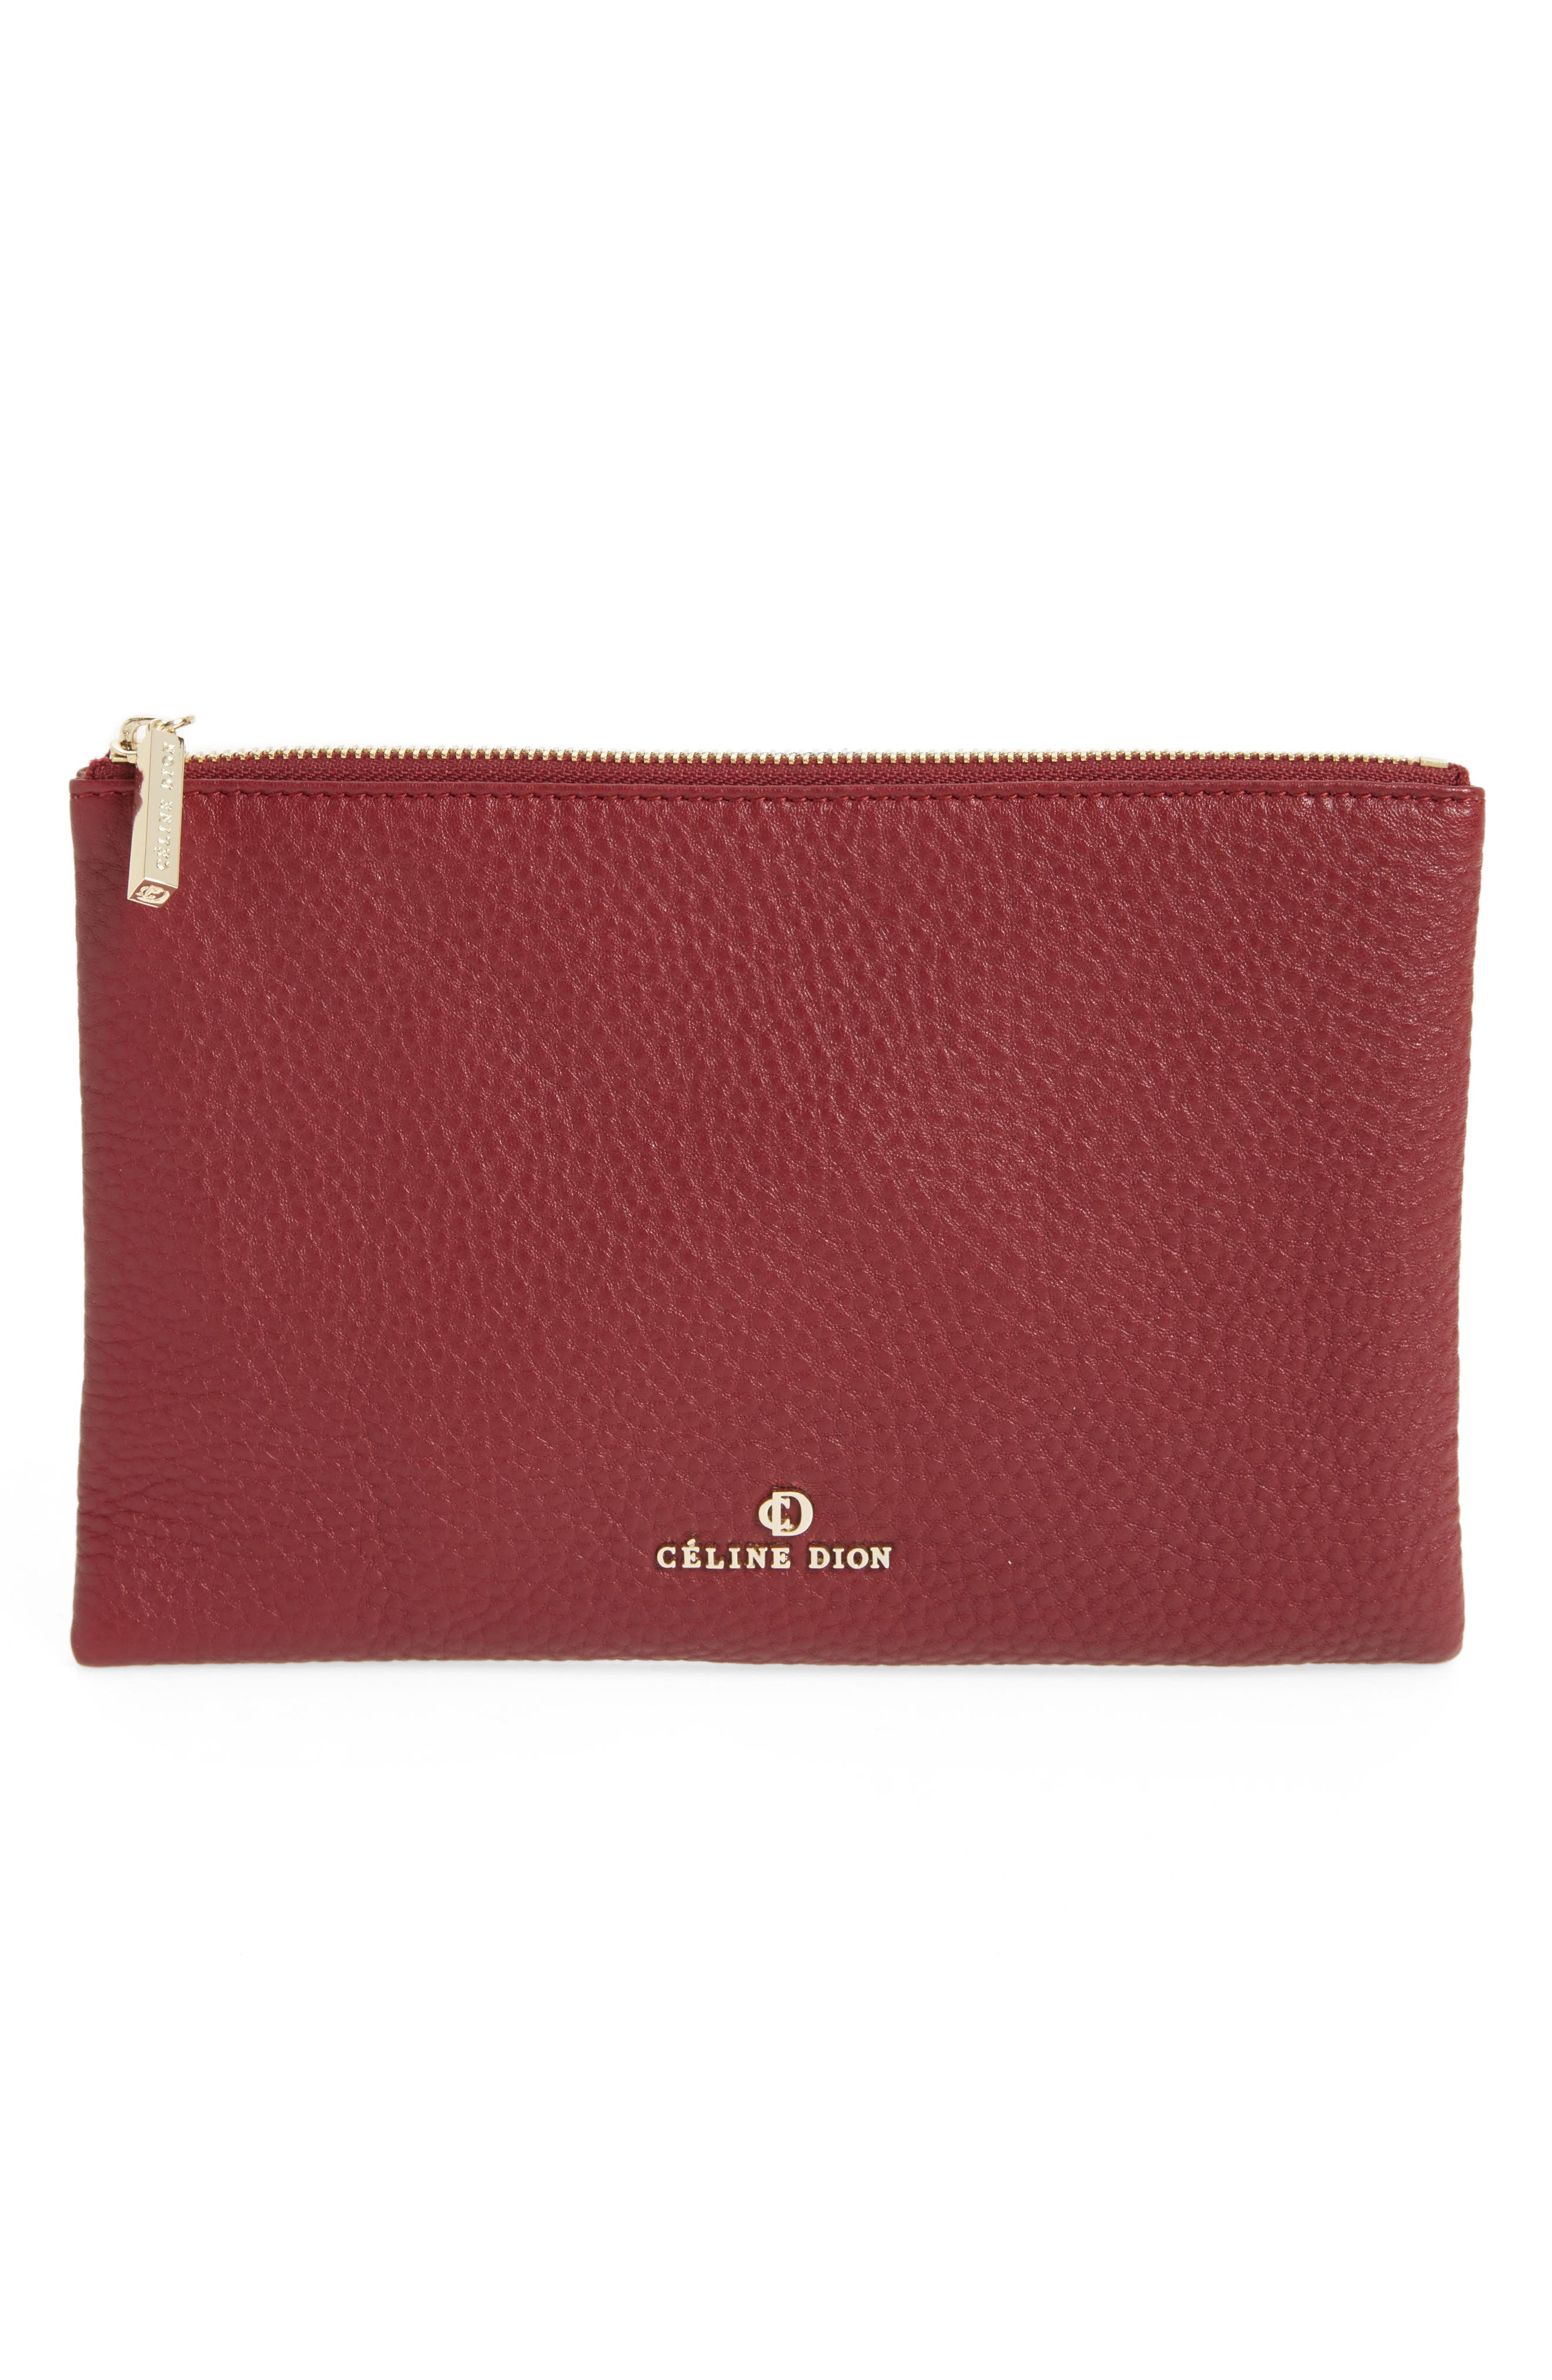 Céline Dion Adagio Leather Zip Pouch,                         Main,                         color, Dark Red